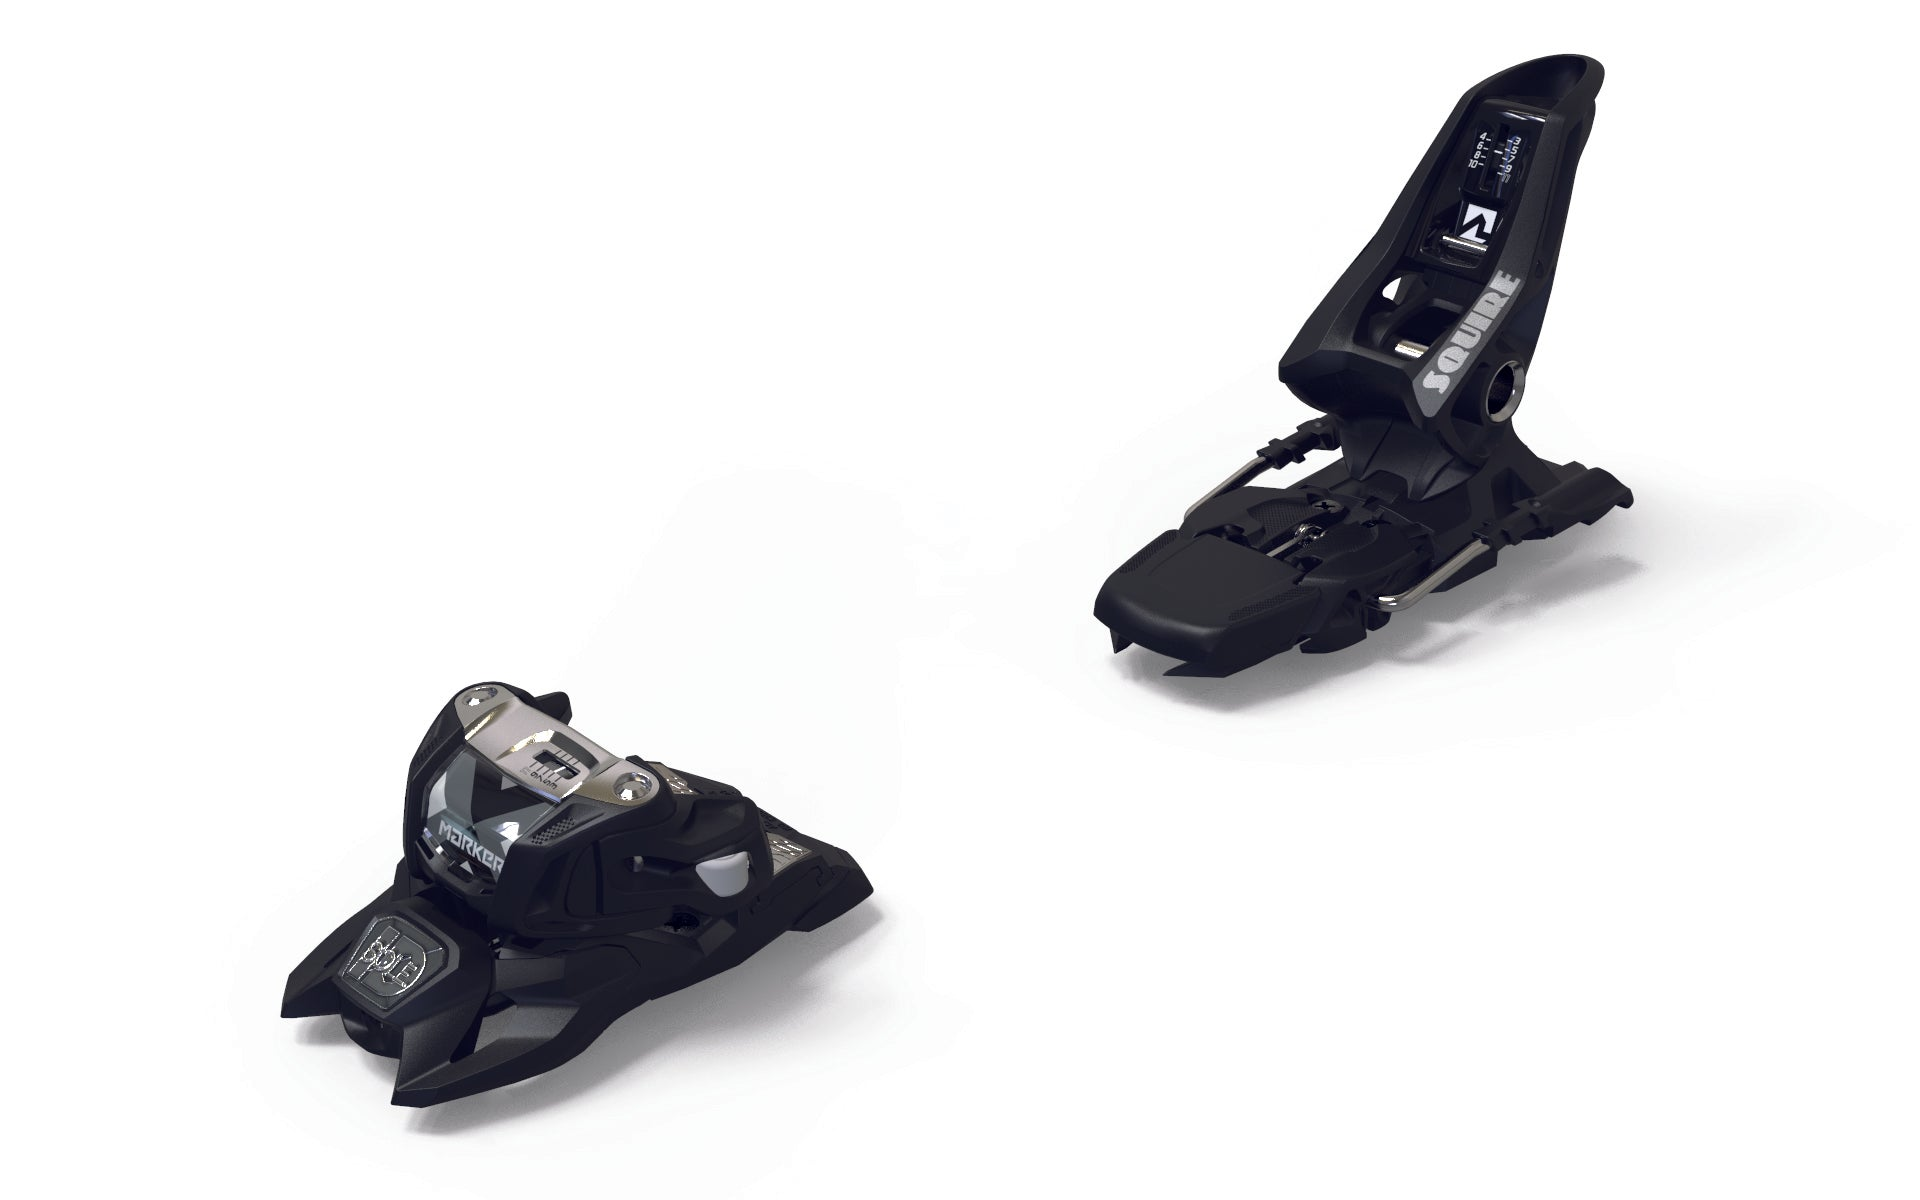 Marker Squire 11 ID Bindings 2020/21